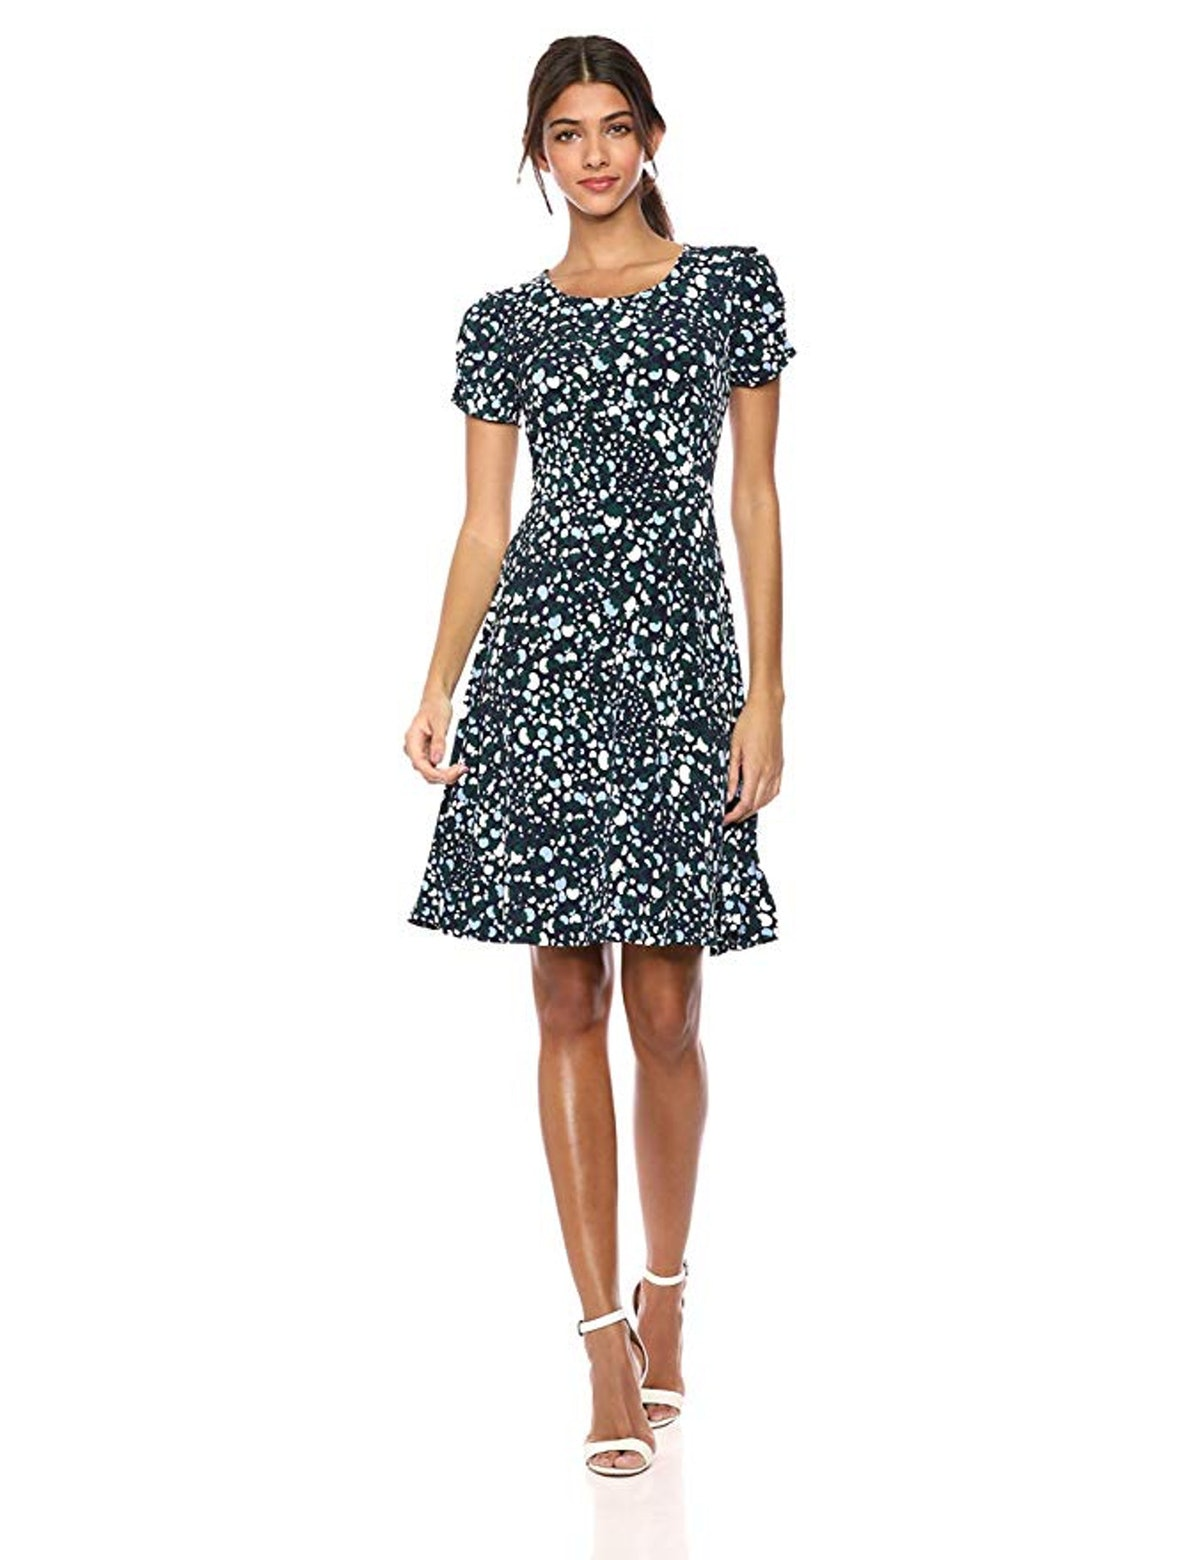 Lark & Ro Women's Gathered Short Sleeve Crew Neck Fit and Flare Dress